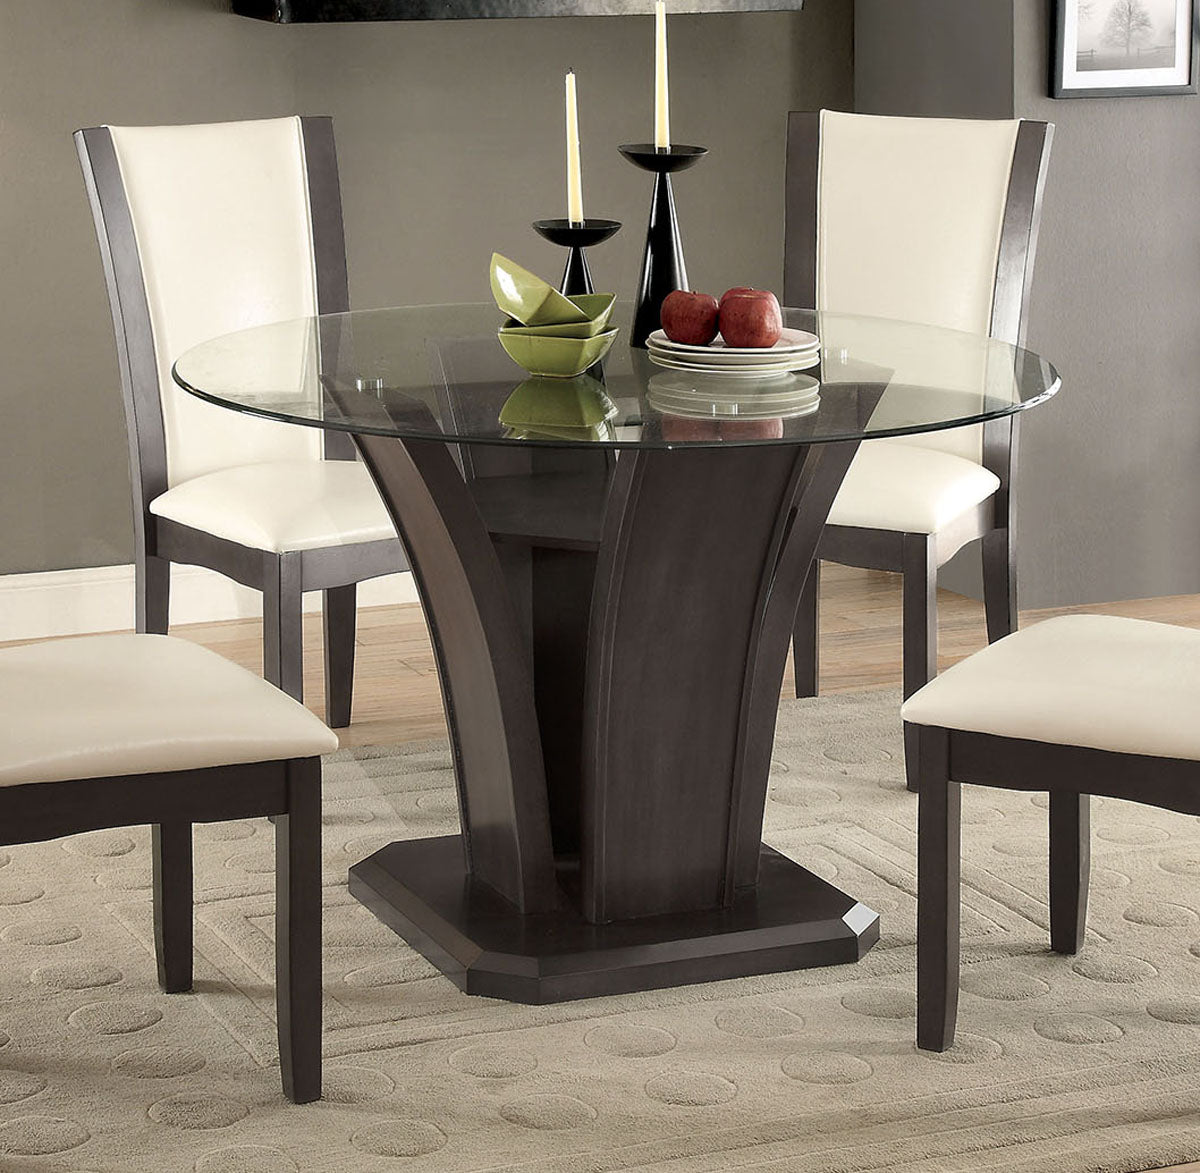 Manhattan CM3710GY-RT Transitional Gray Finish Round Table